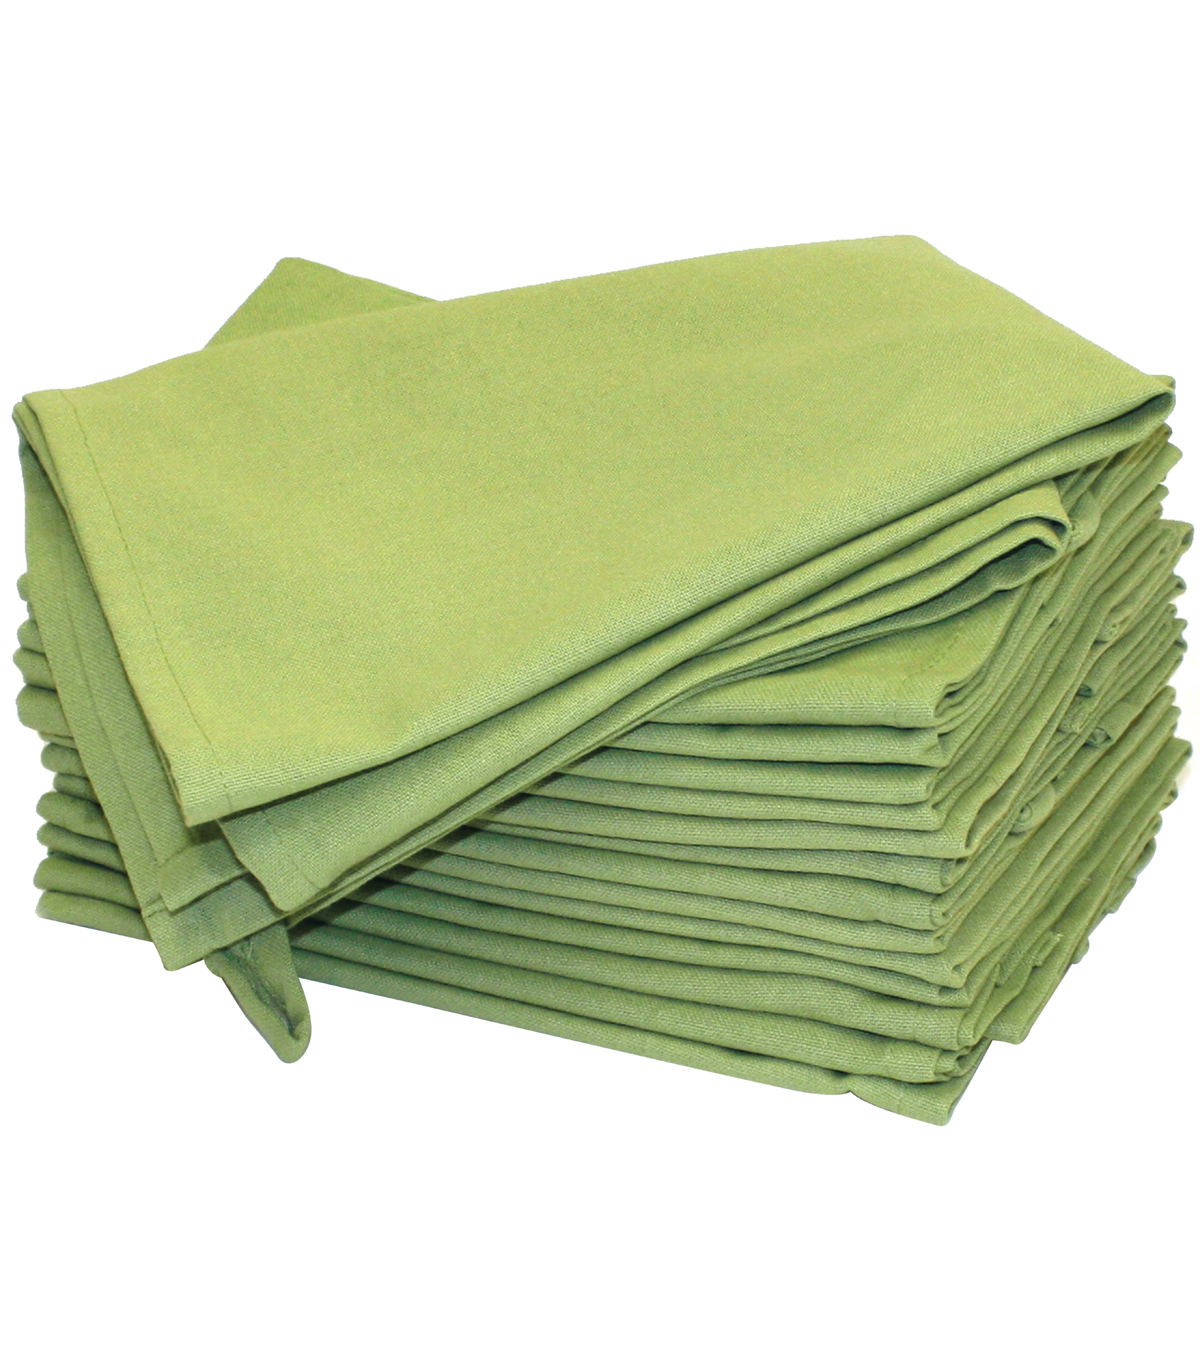 "Hemmed Color Dyed Kitchen Towels 18""X28"" 2/Pkg-Avocado Green"